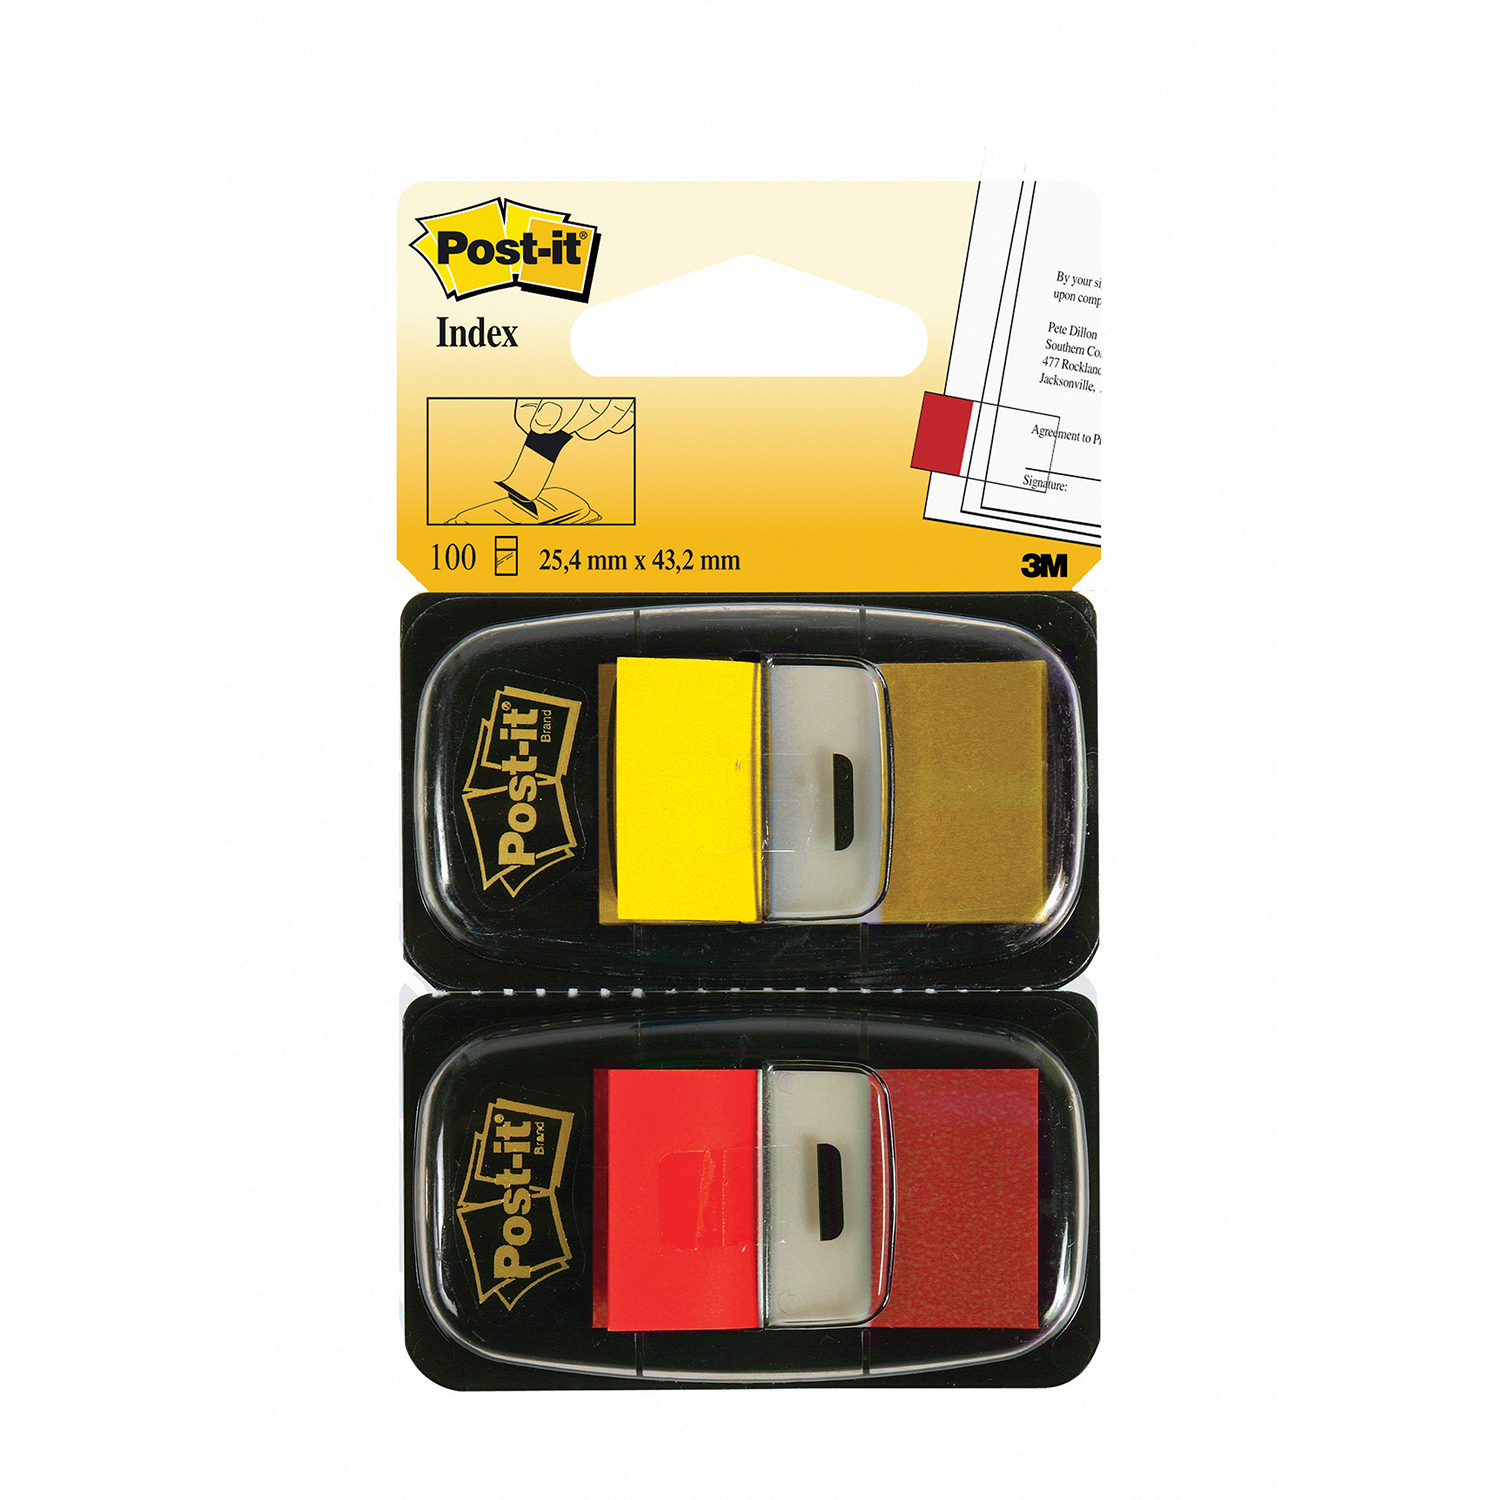 Post-It Index Markers 25x43.2mm Dual Pack Red/Yellow Ref 680-RY2 [100 Markers]